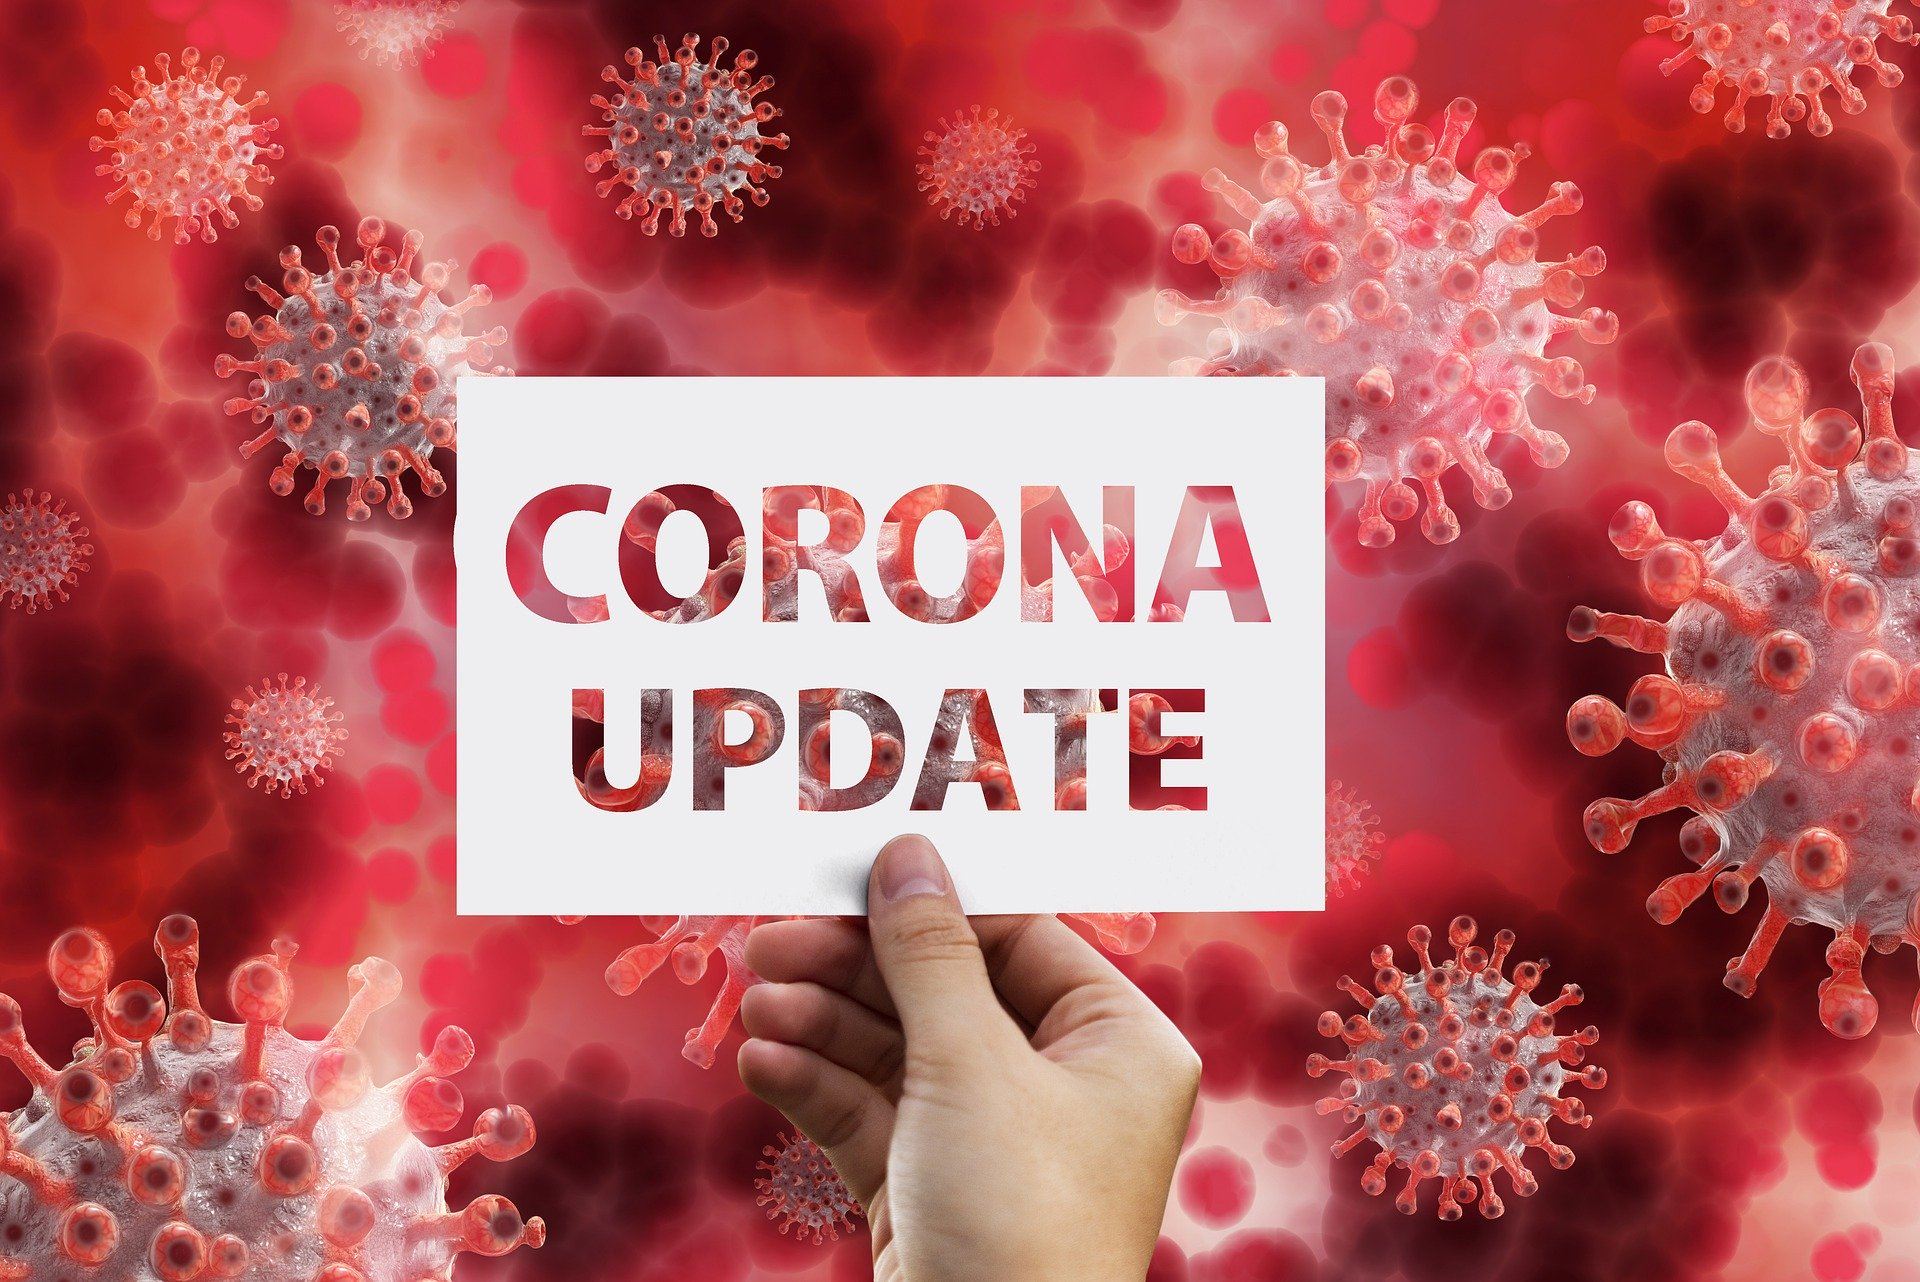 COVID-19: CJRS and SEISS Update